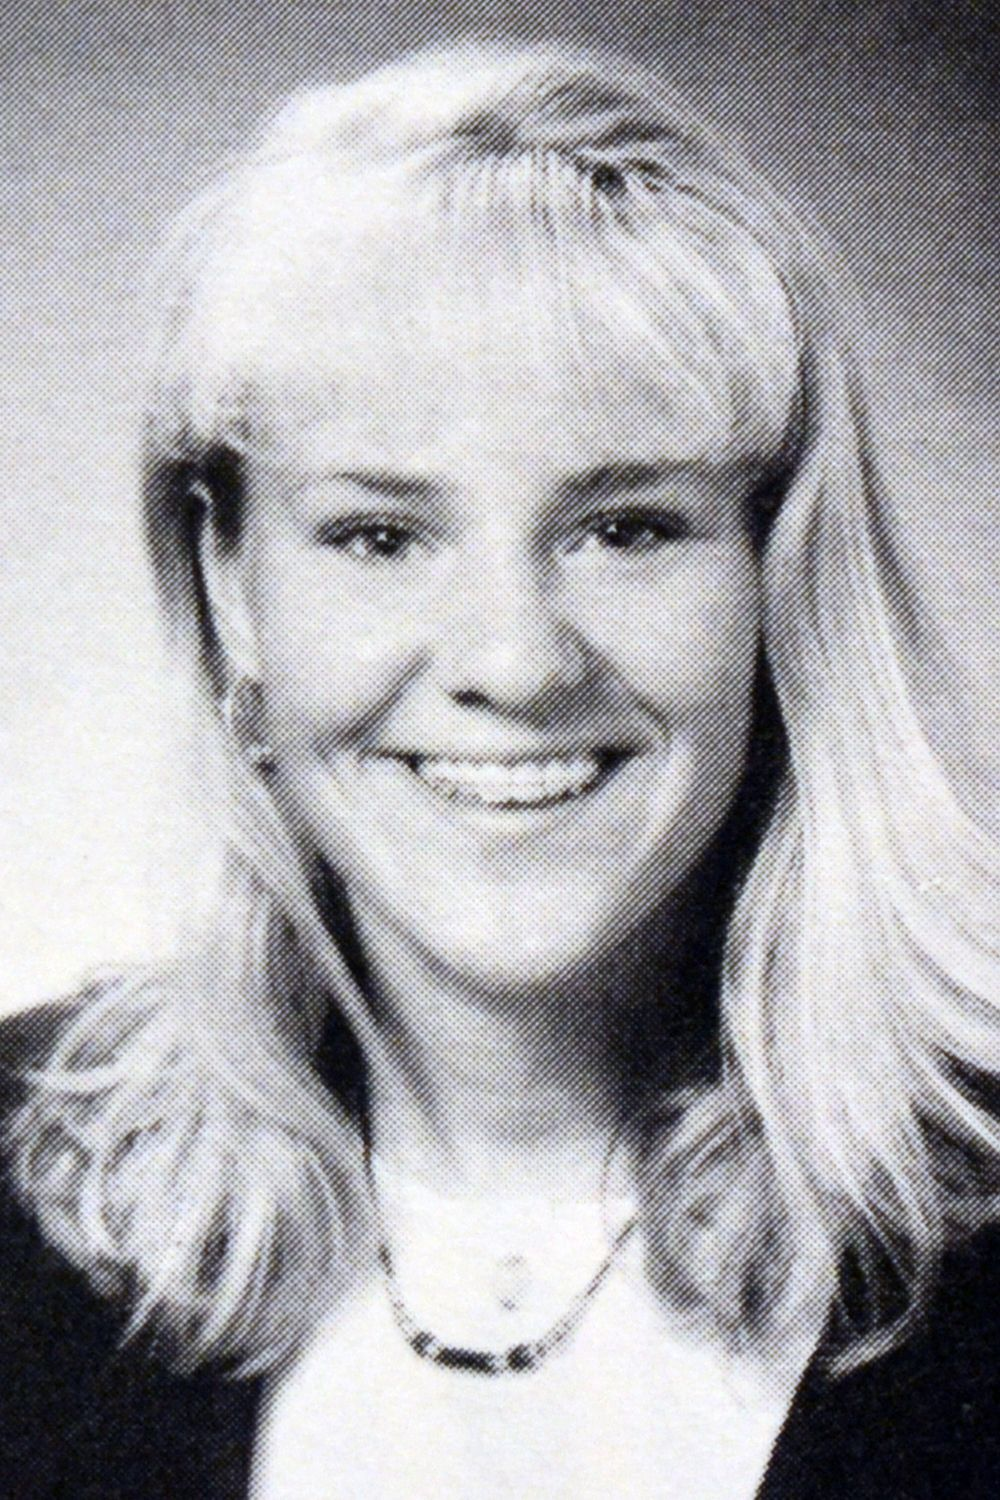 Ms. Meaghan A. Sittler '94